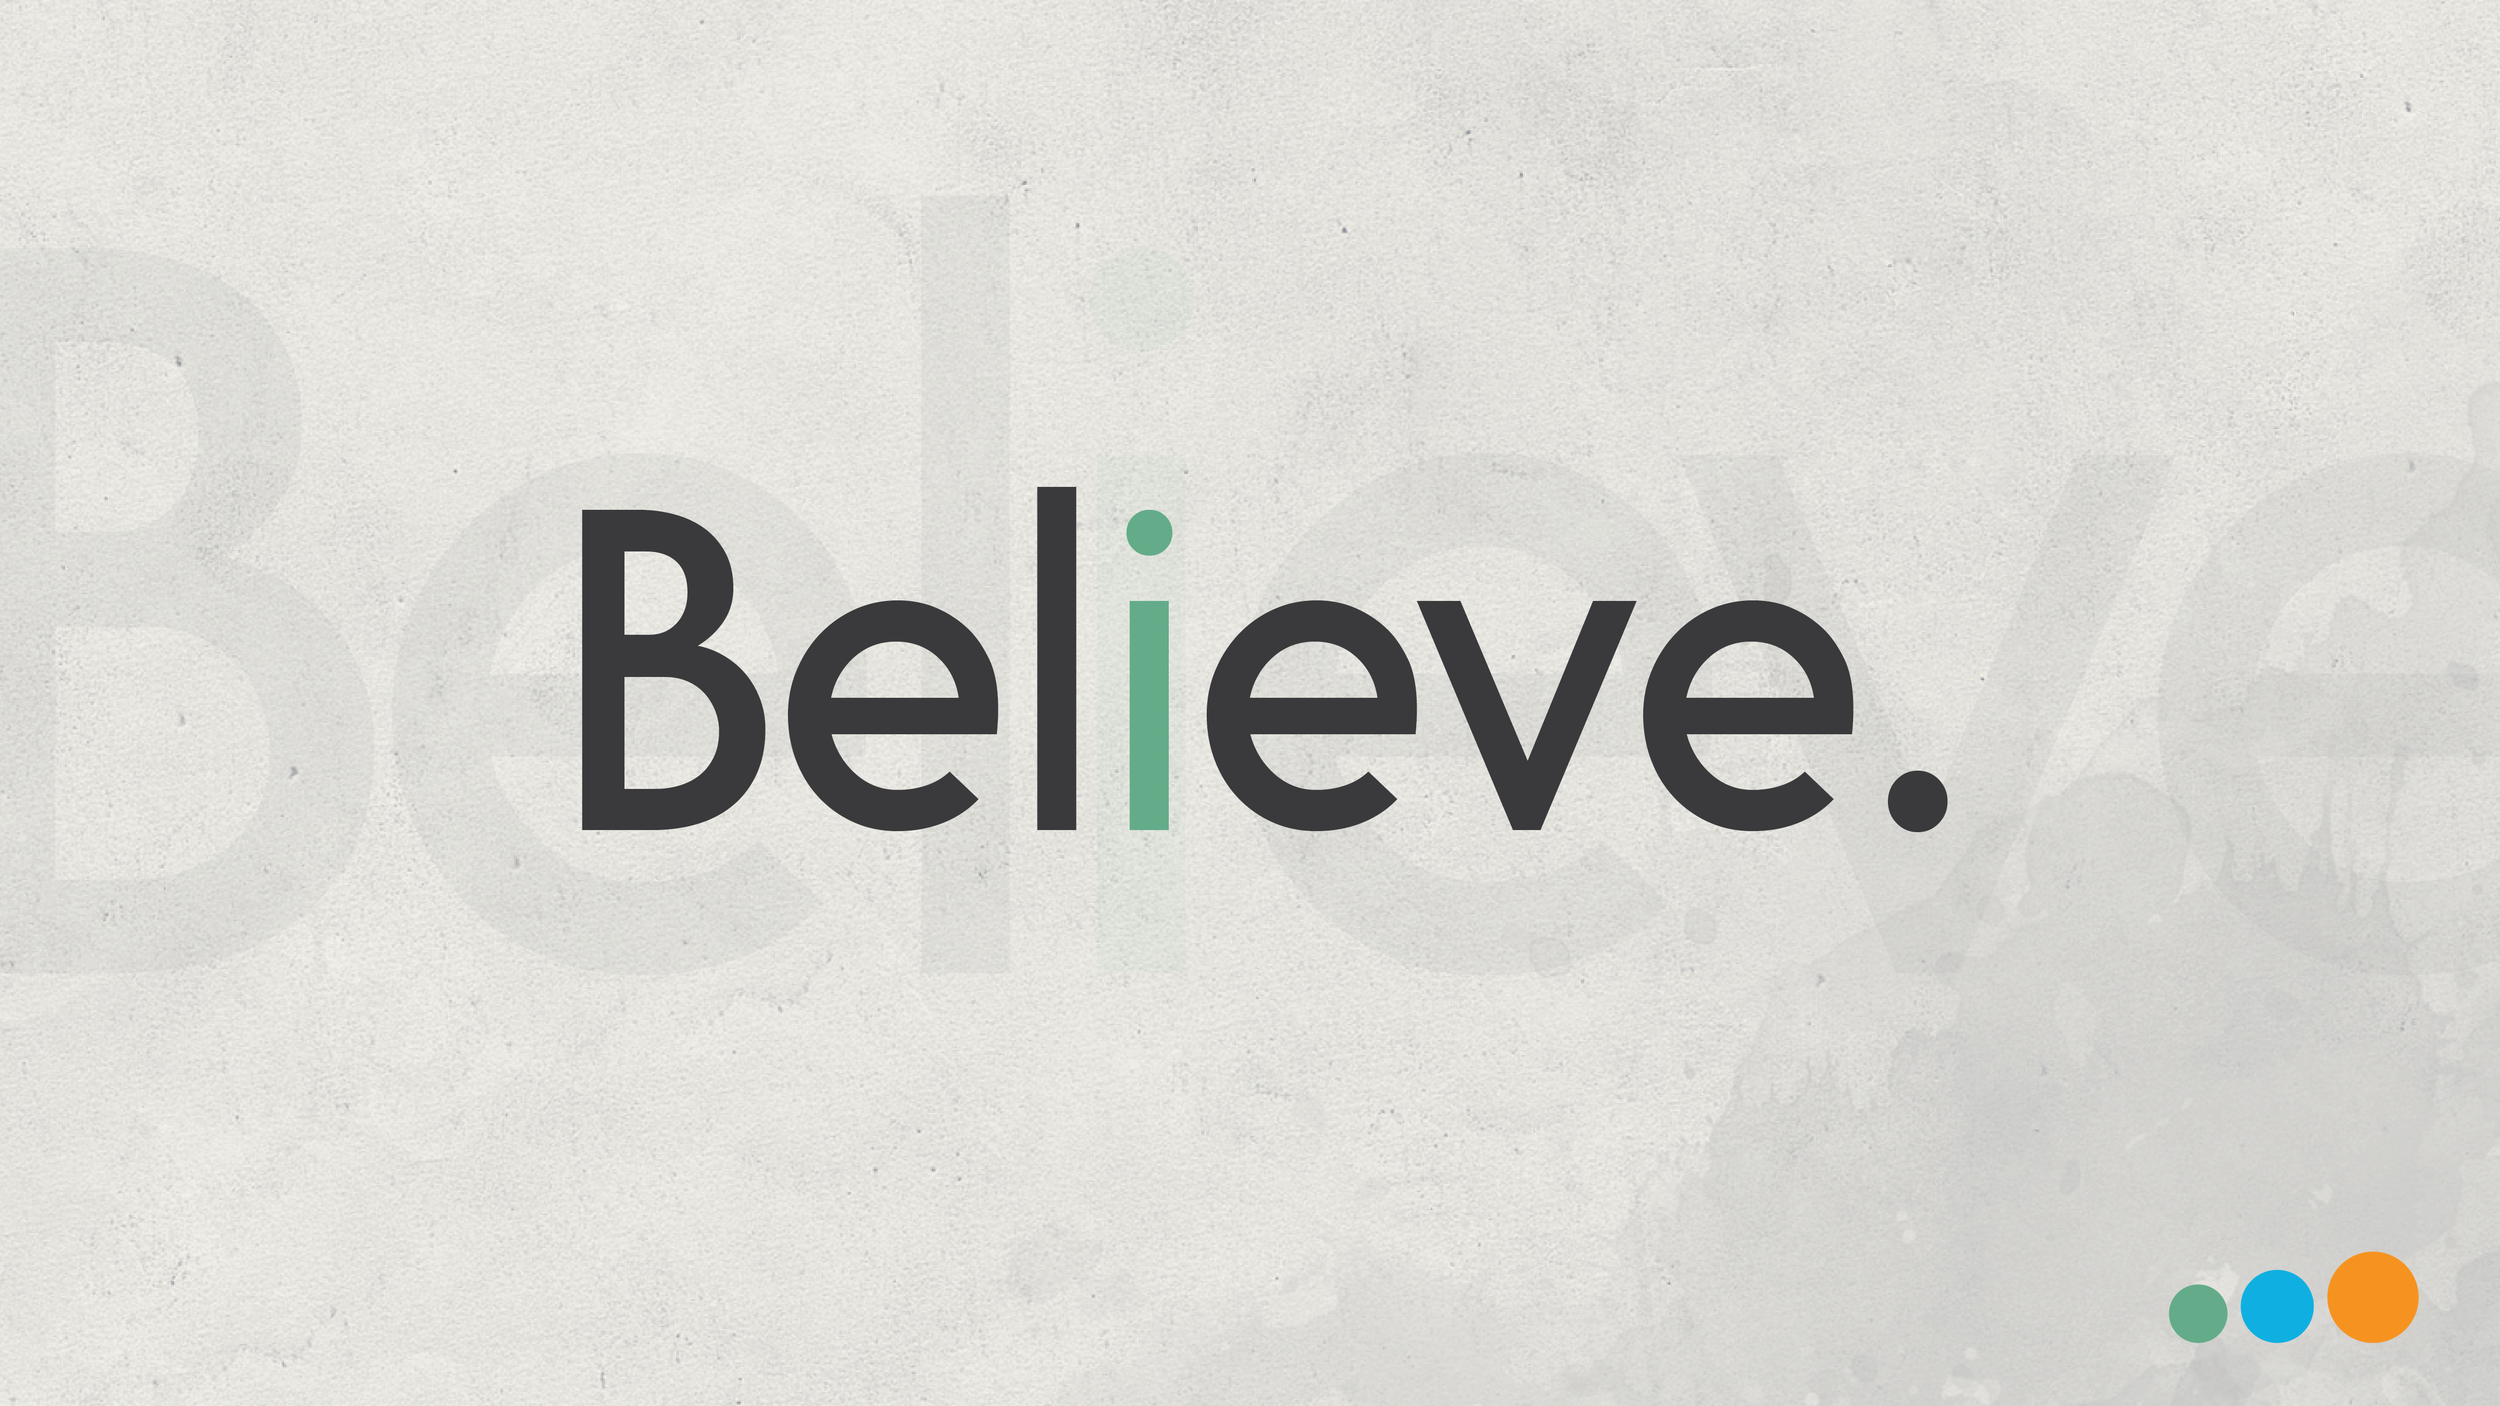 BELIEVE - In a congregational-wide series, Believe, comes from a study by Pastor Randy Frazee based off of his book, Believe. Believe is a spiritual growth experience that helps Christians of all ages think, act, and be more like Jesus.